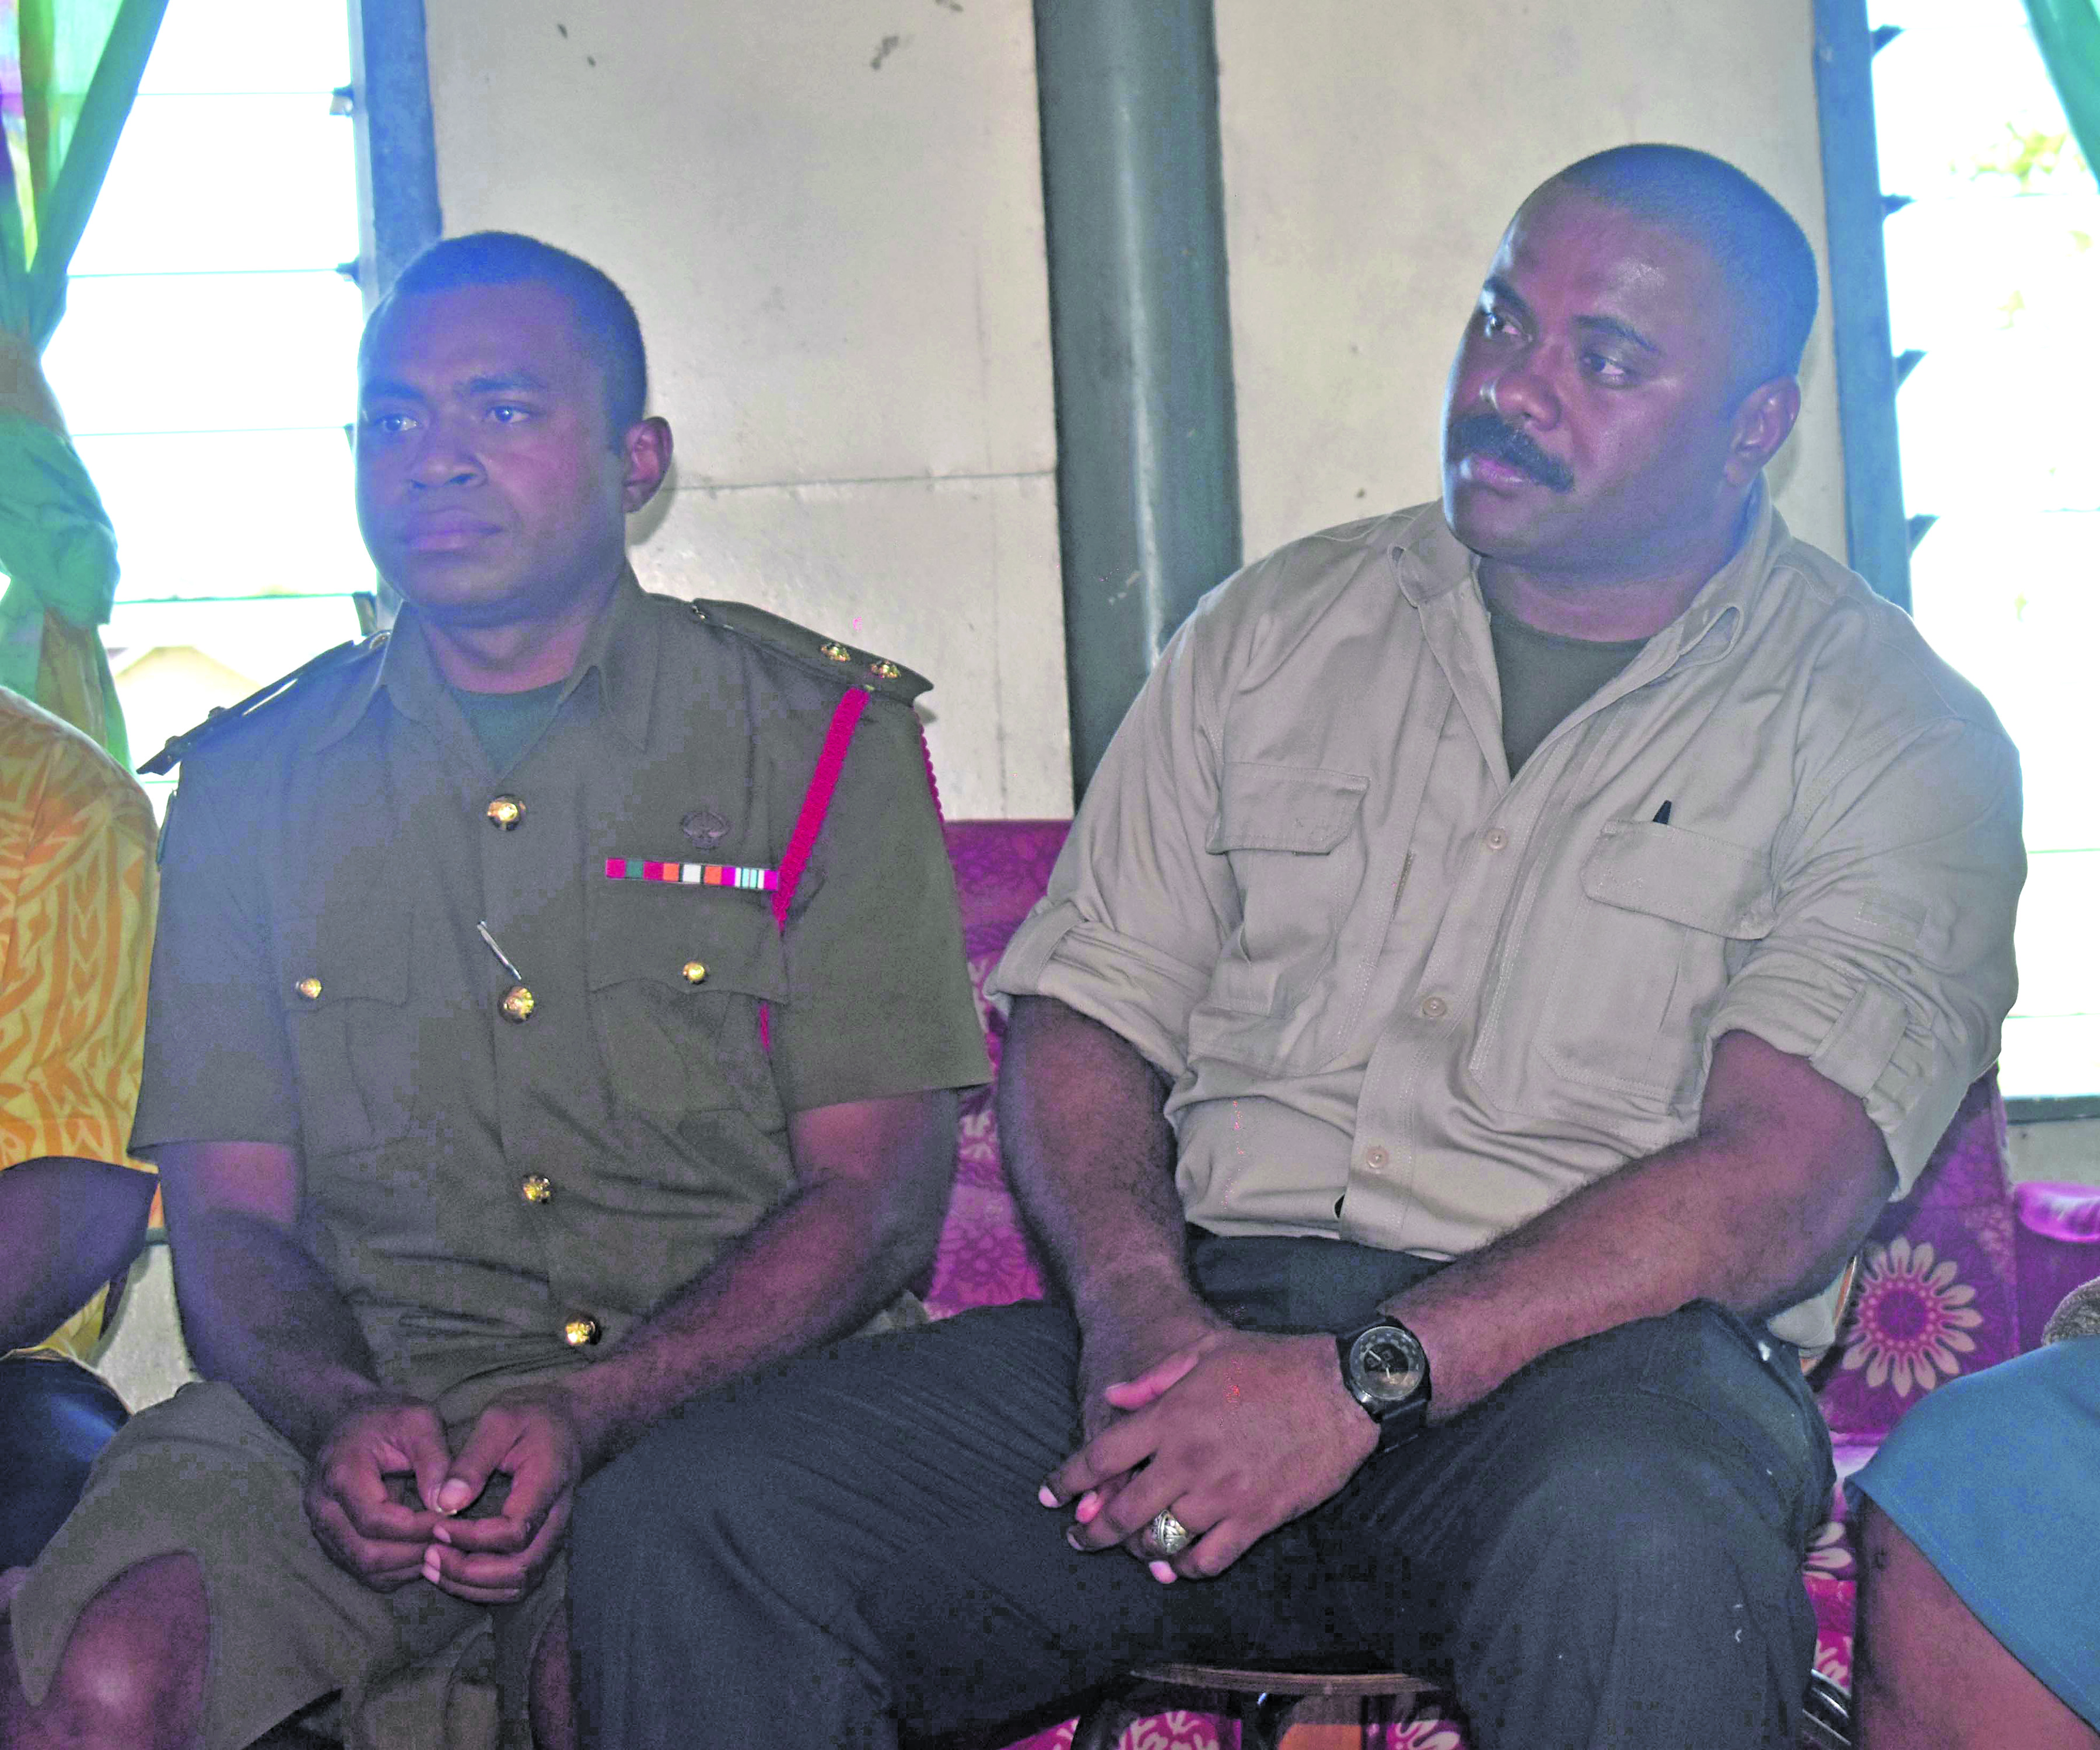 Republic of the Fiji Military Forces, Lieutenant Koli Niumataiwalu and Major Simione Qionibaravilala  during the traditional welcoming ceremony accorded to the 23 military personnel who  returned from Iraq on 5 January 2017. Photo: Lusiaana Banuve